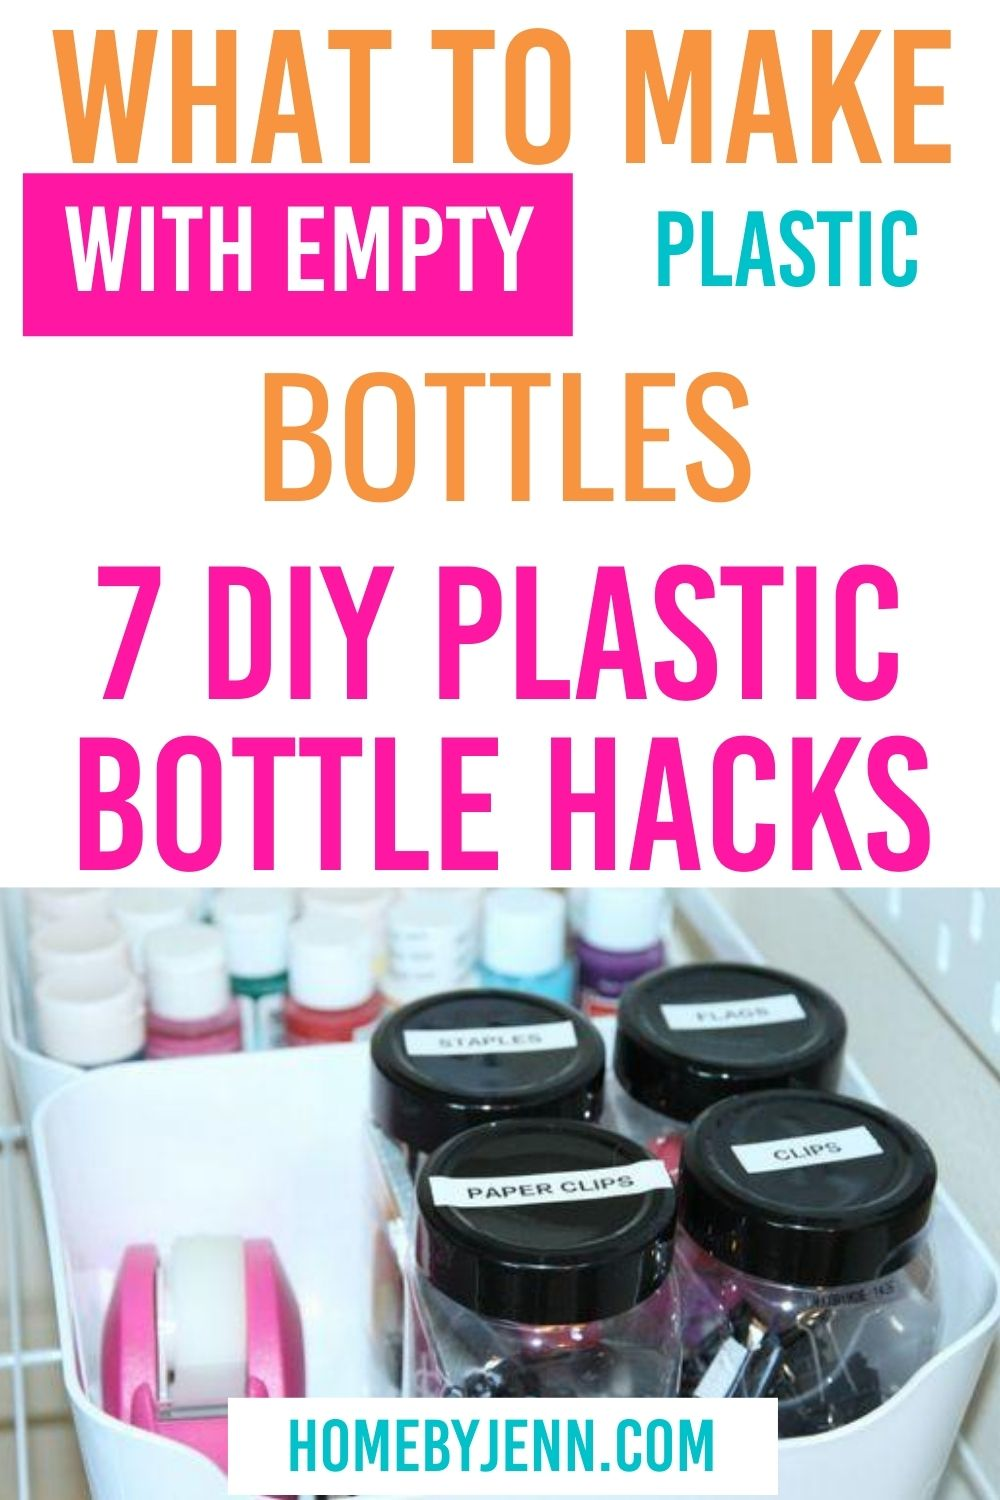 Get 7 DIY plastic bottle hacks to know what to make with empty plastic bottles. These upcycle ideas will help you organize your home. #organize #DIY #upcycle #plasticbottlehack via @homebyjenn